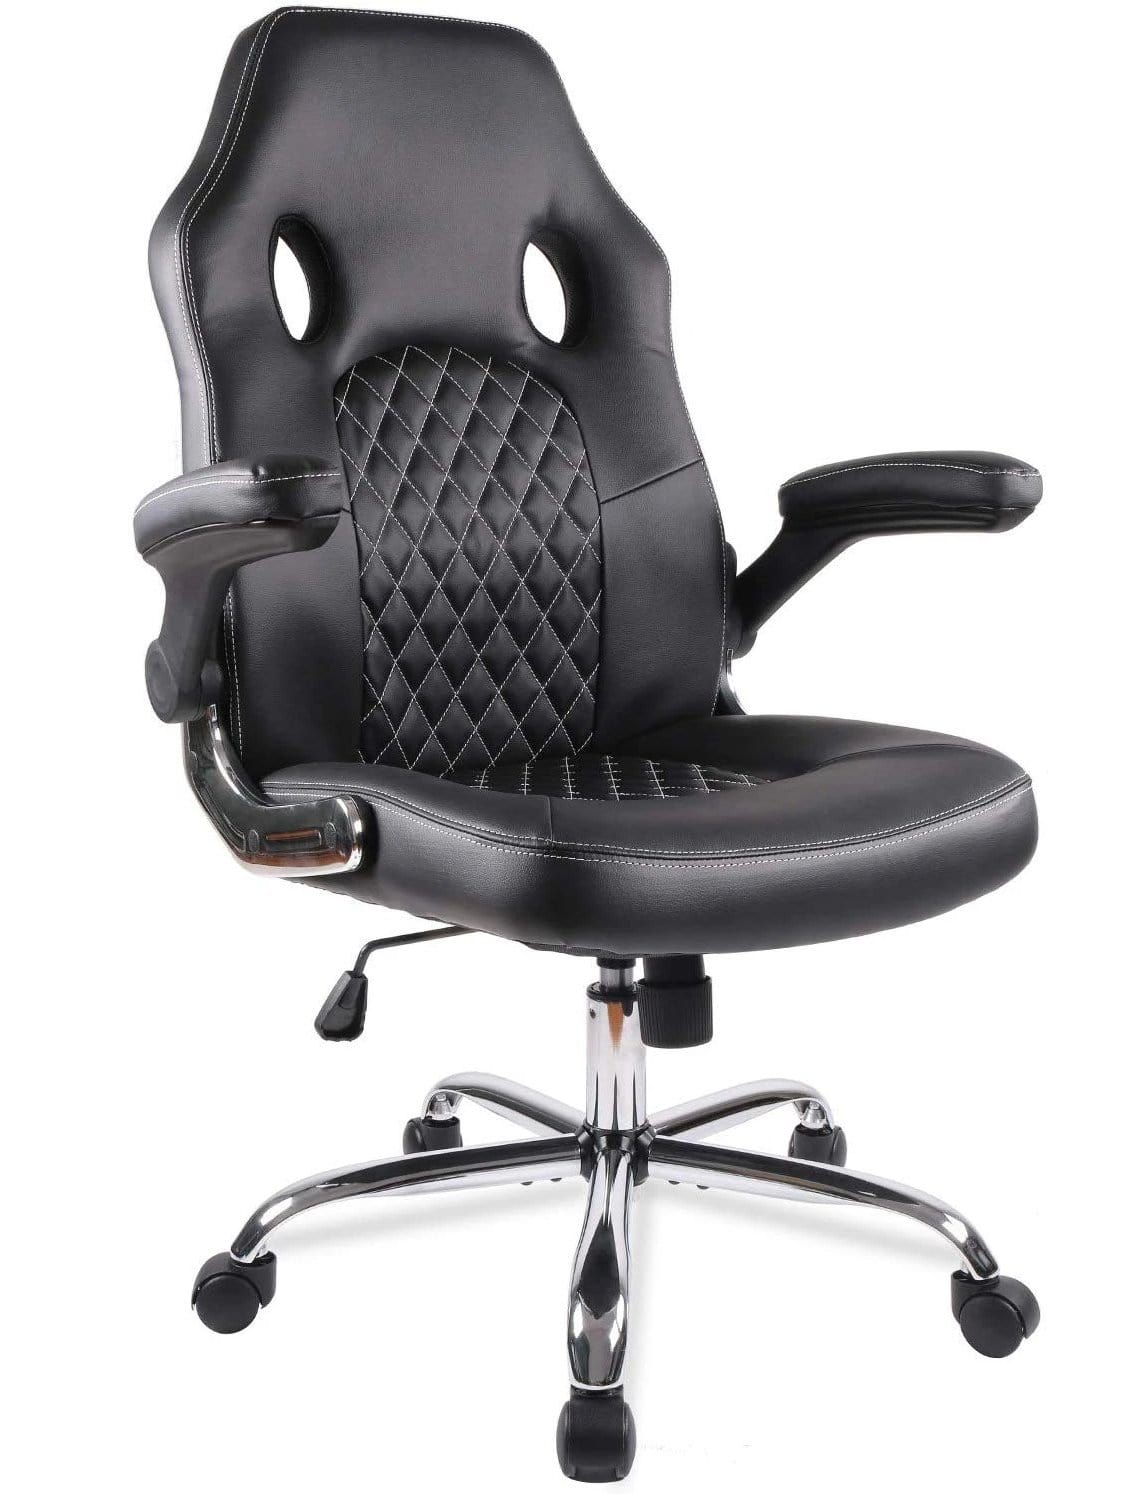 Smugdesk Office Chair Desk Leather Gaming Chair High Back Ergonomic A